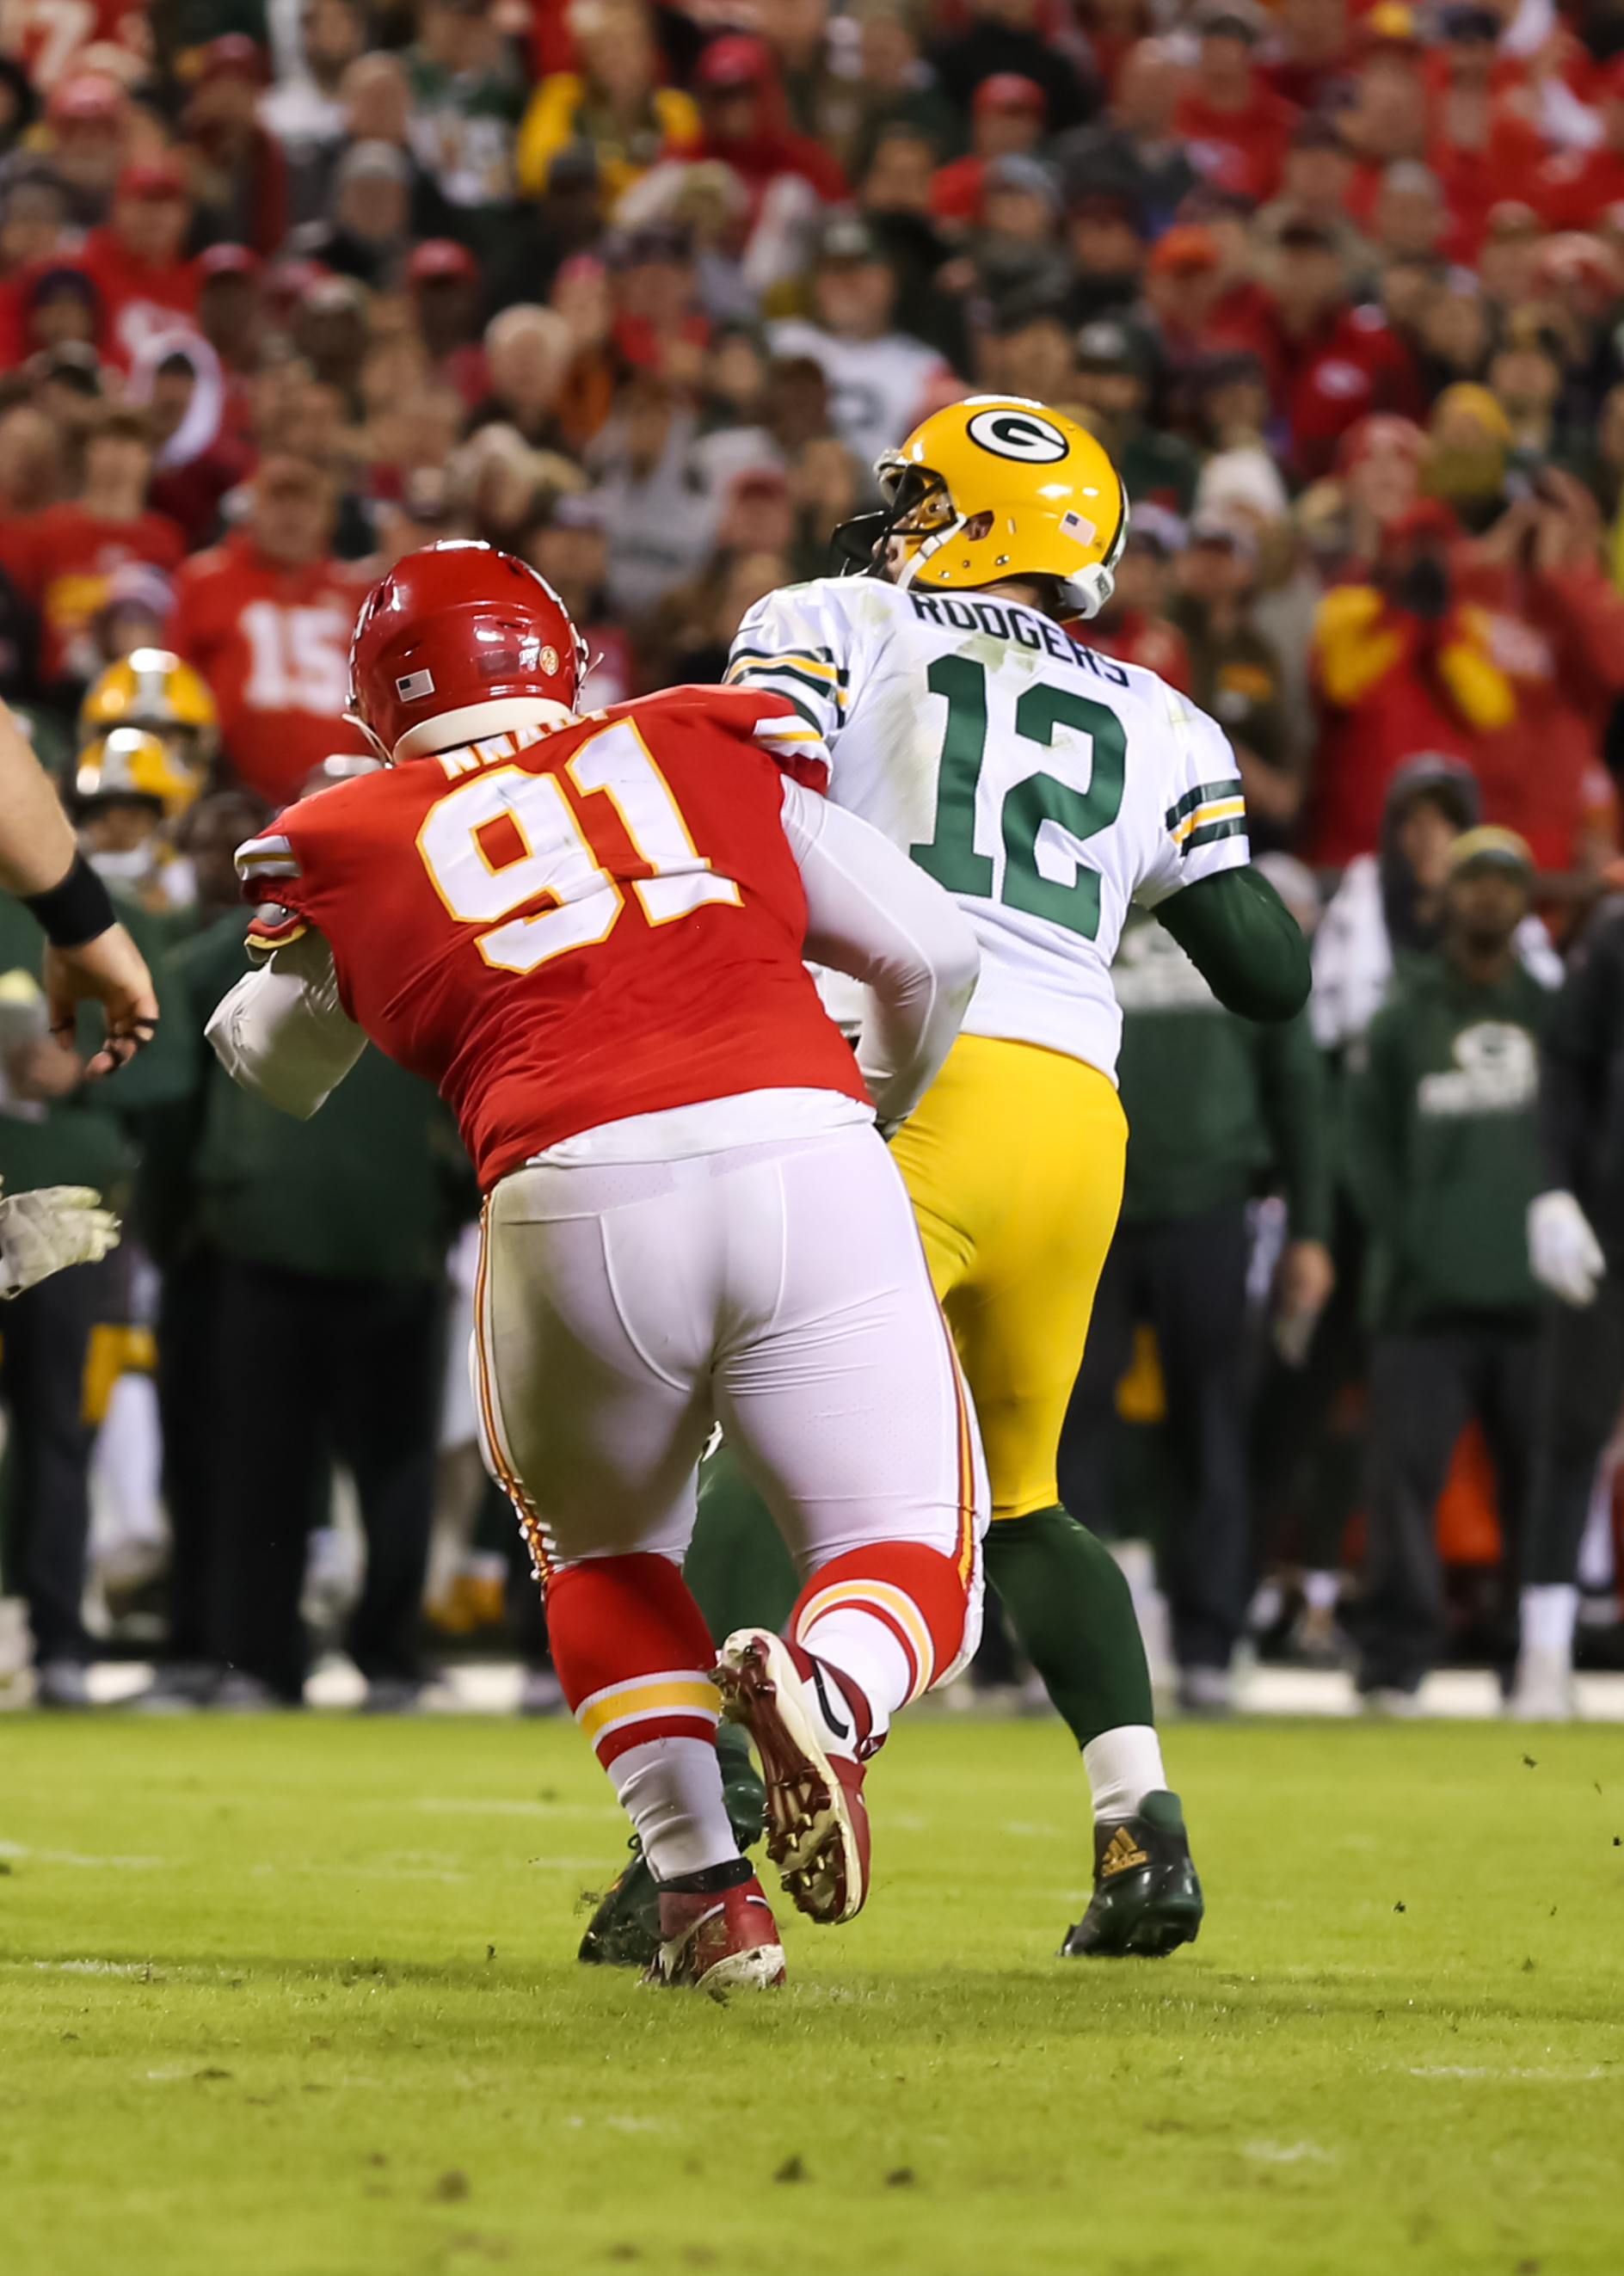 NFL: OCT 27 Packers at Chiefs